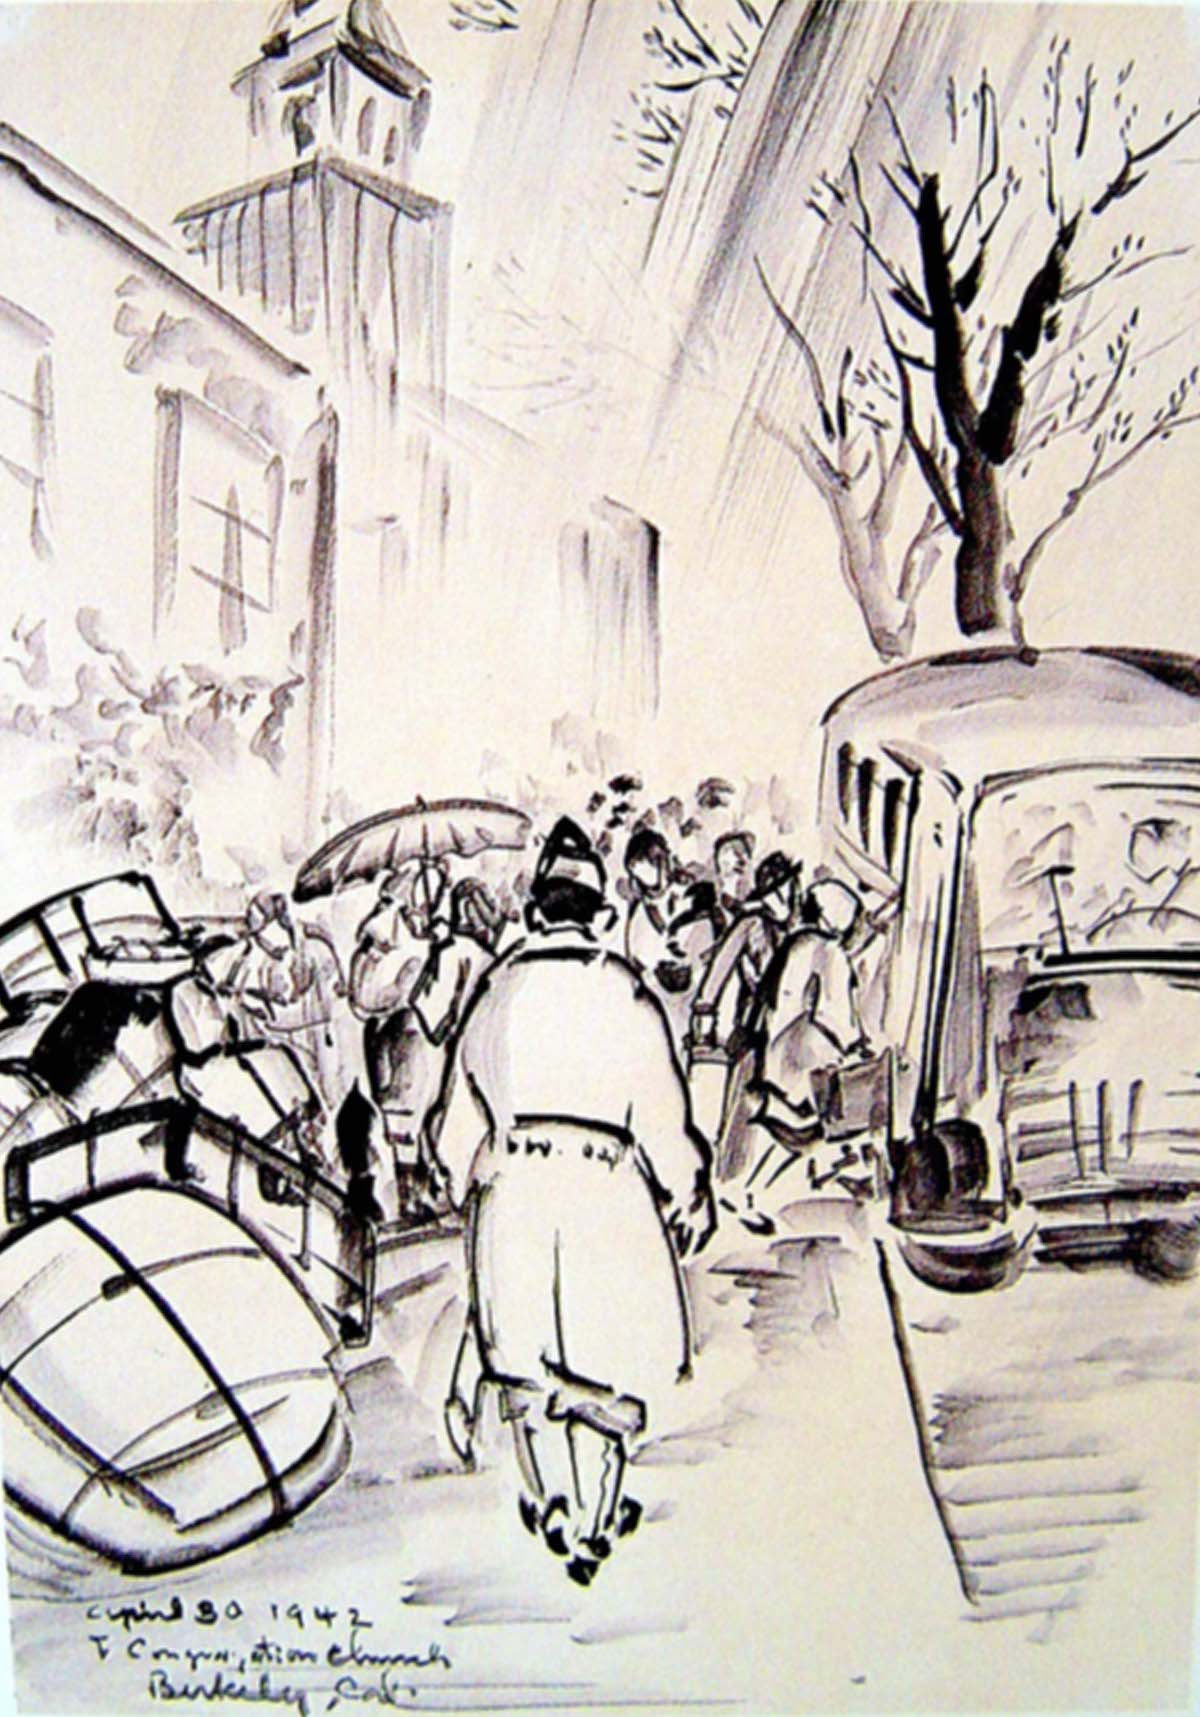 a black and white painting of people loading onto a bus